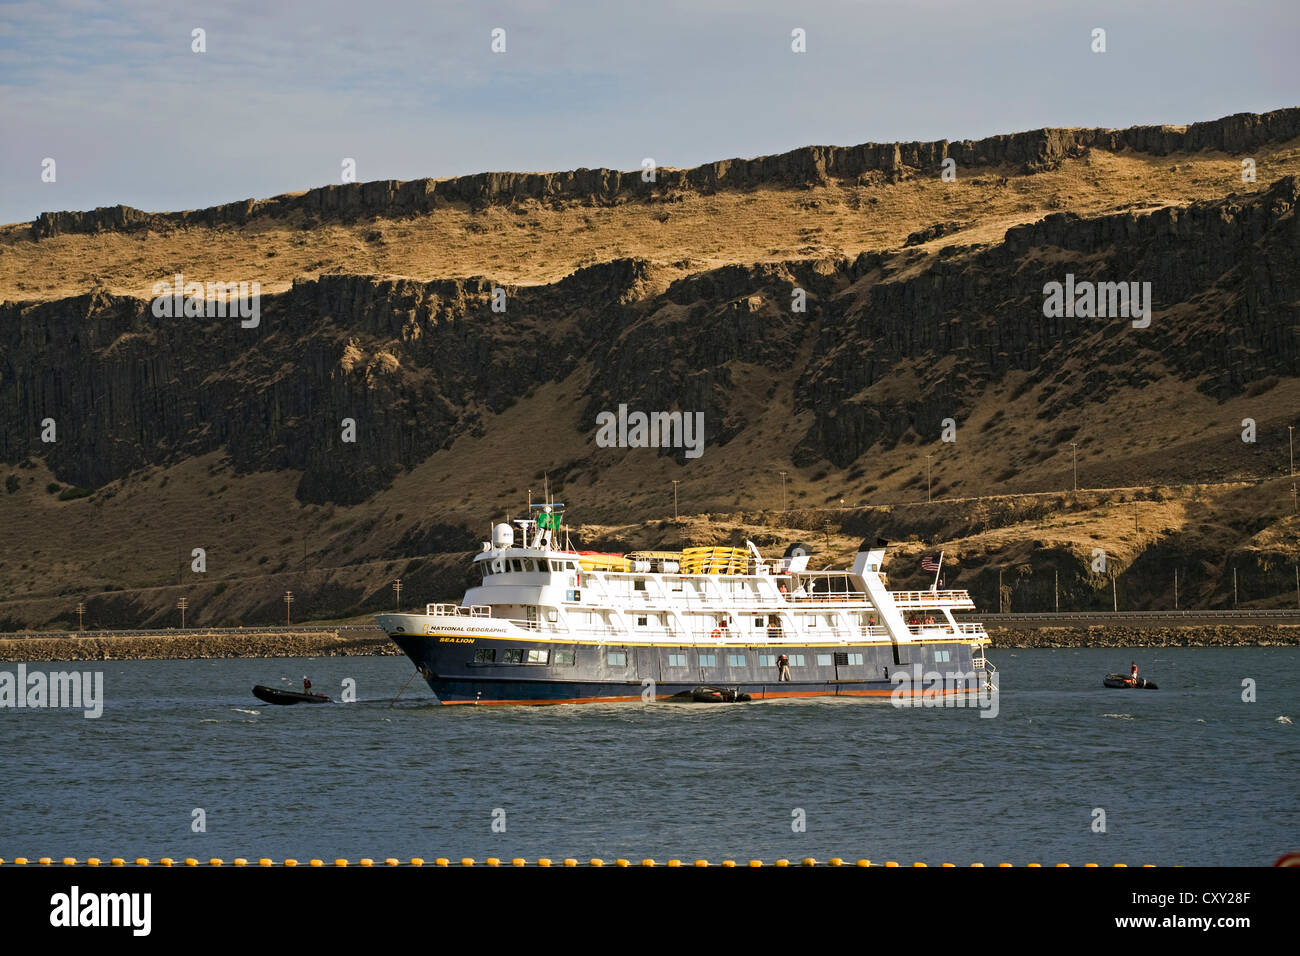 The National Geographic expedition ship Sea Lion at anchor in the Columbia River Gorge, Oregon - Stock Image